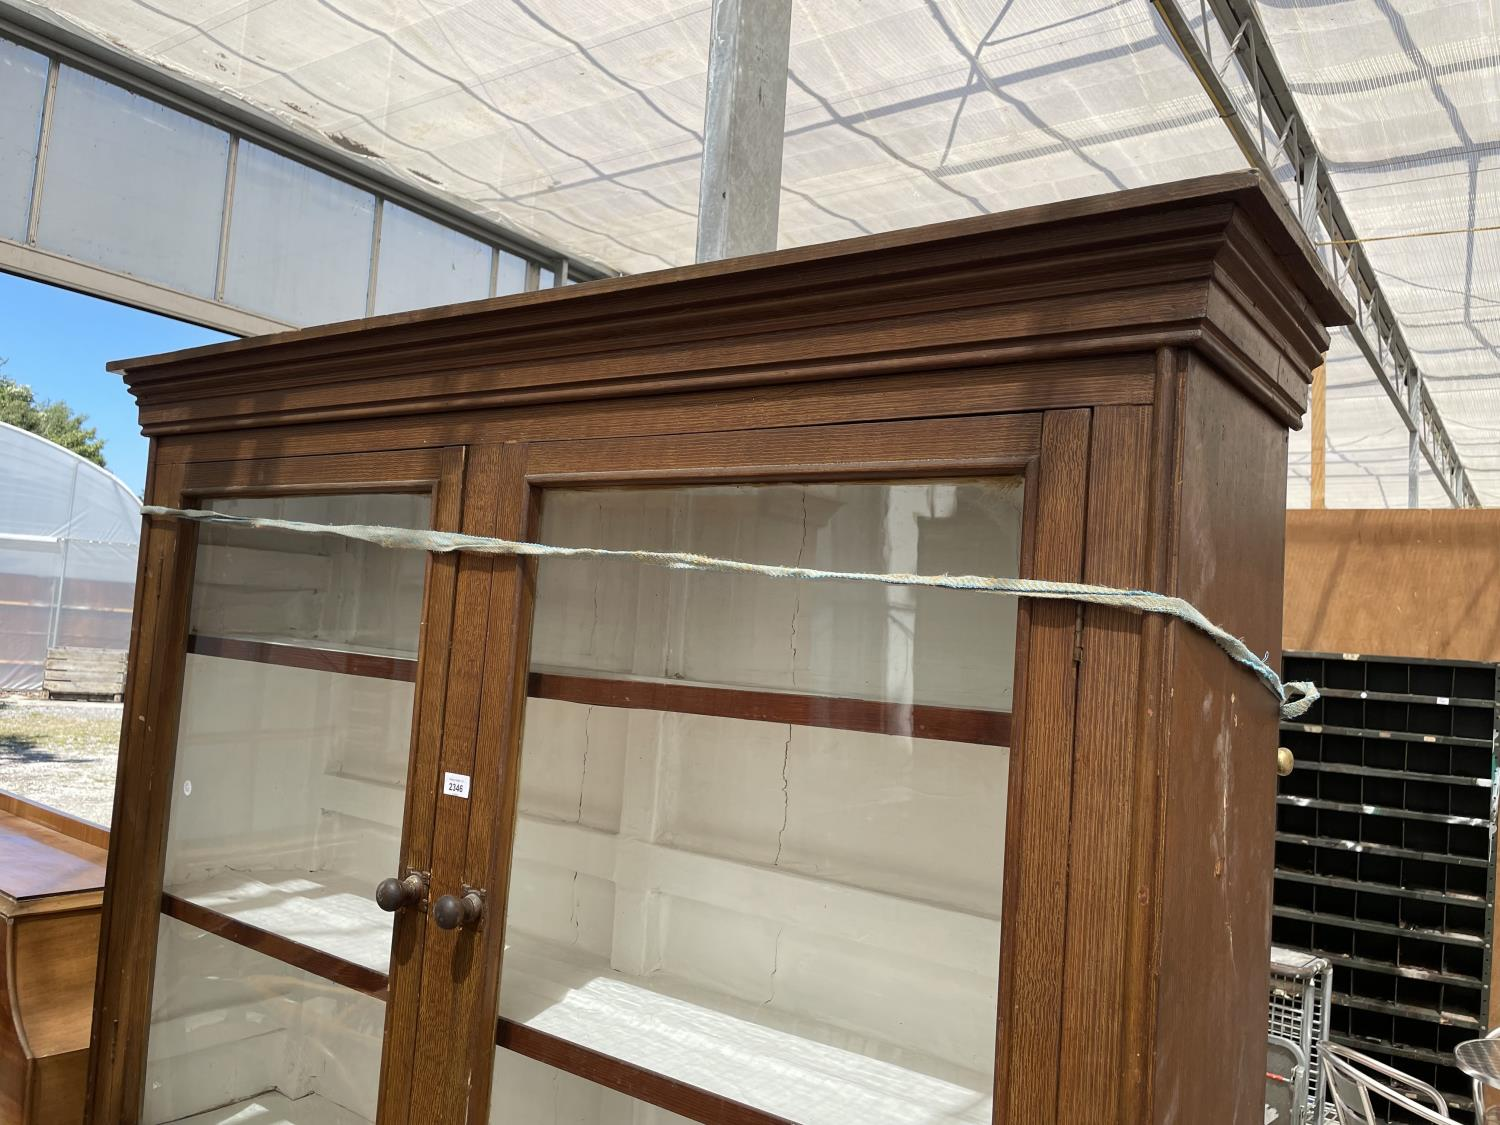 AN OAK BOOKCASE CABINET WITH TWO UPPER GLAZED DOORS AND THREE LOWER DOORS - Image 2 of 5